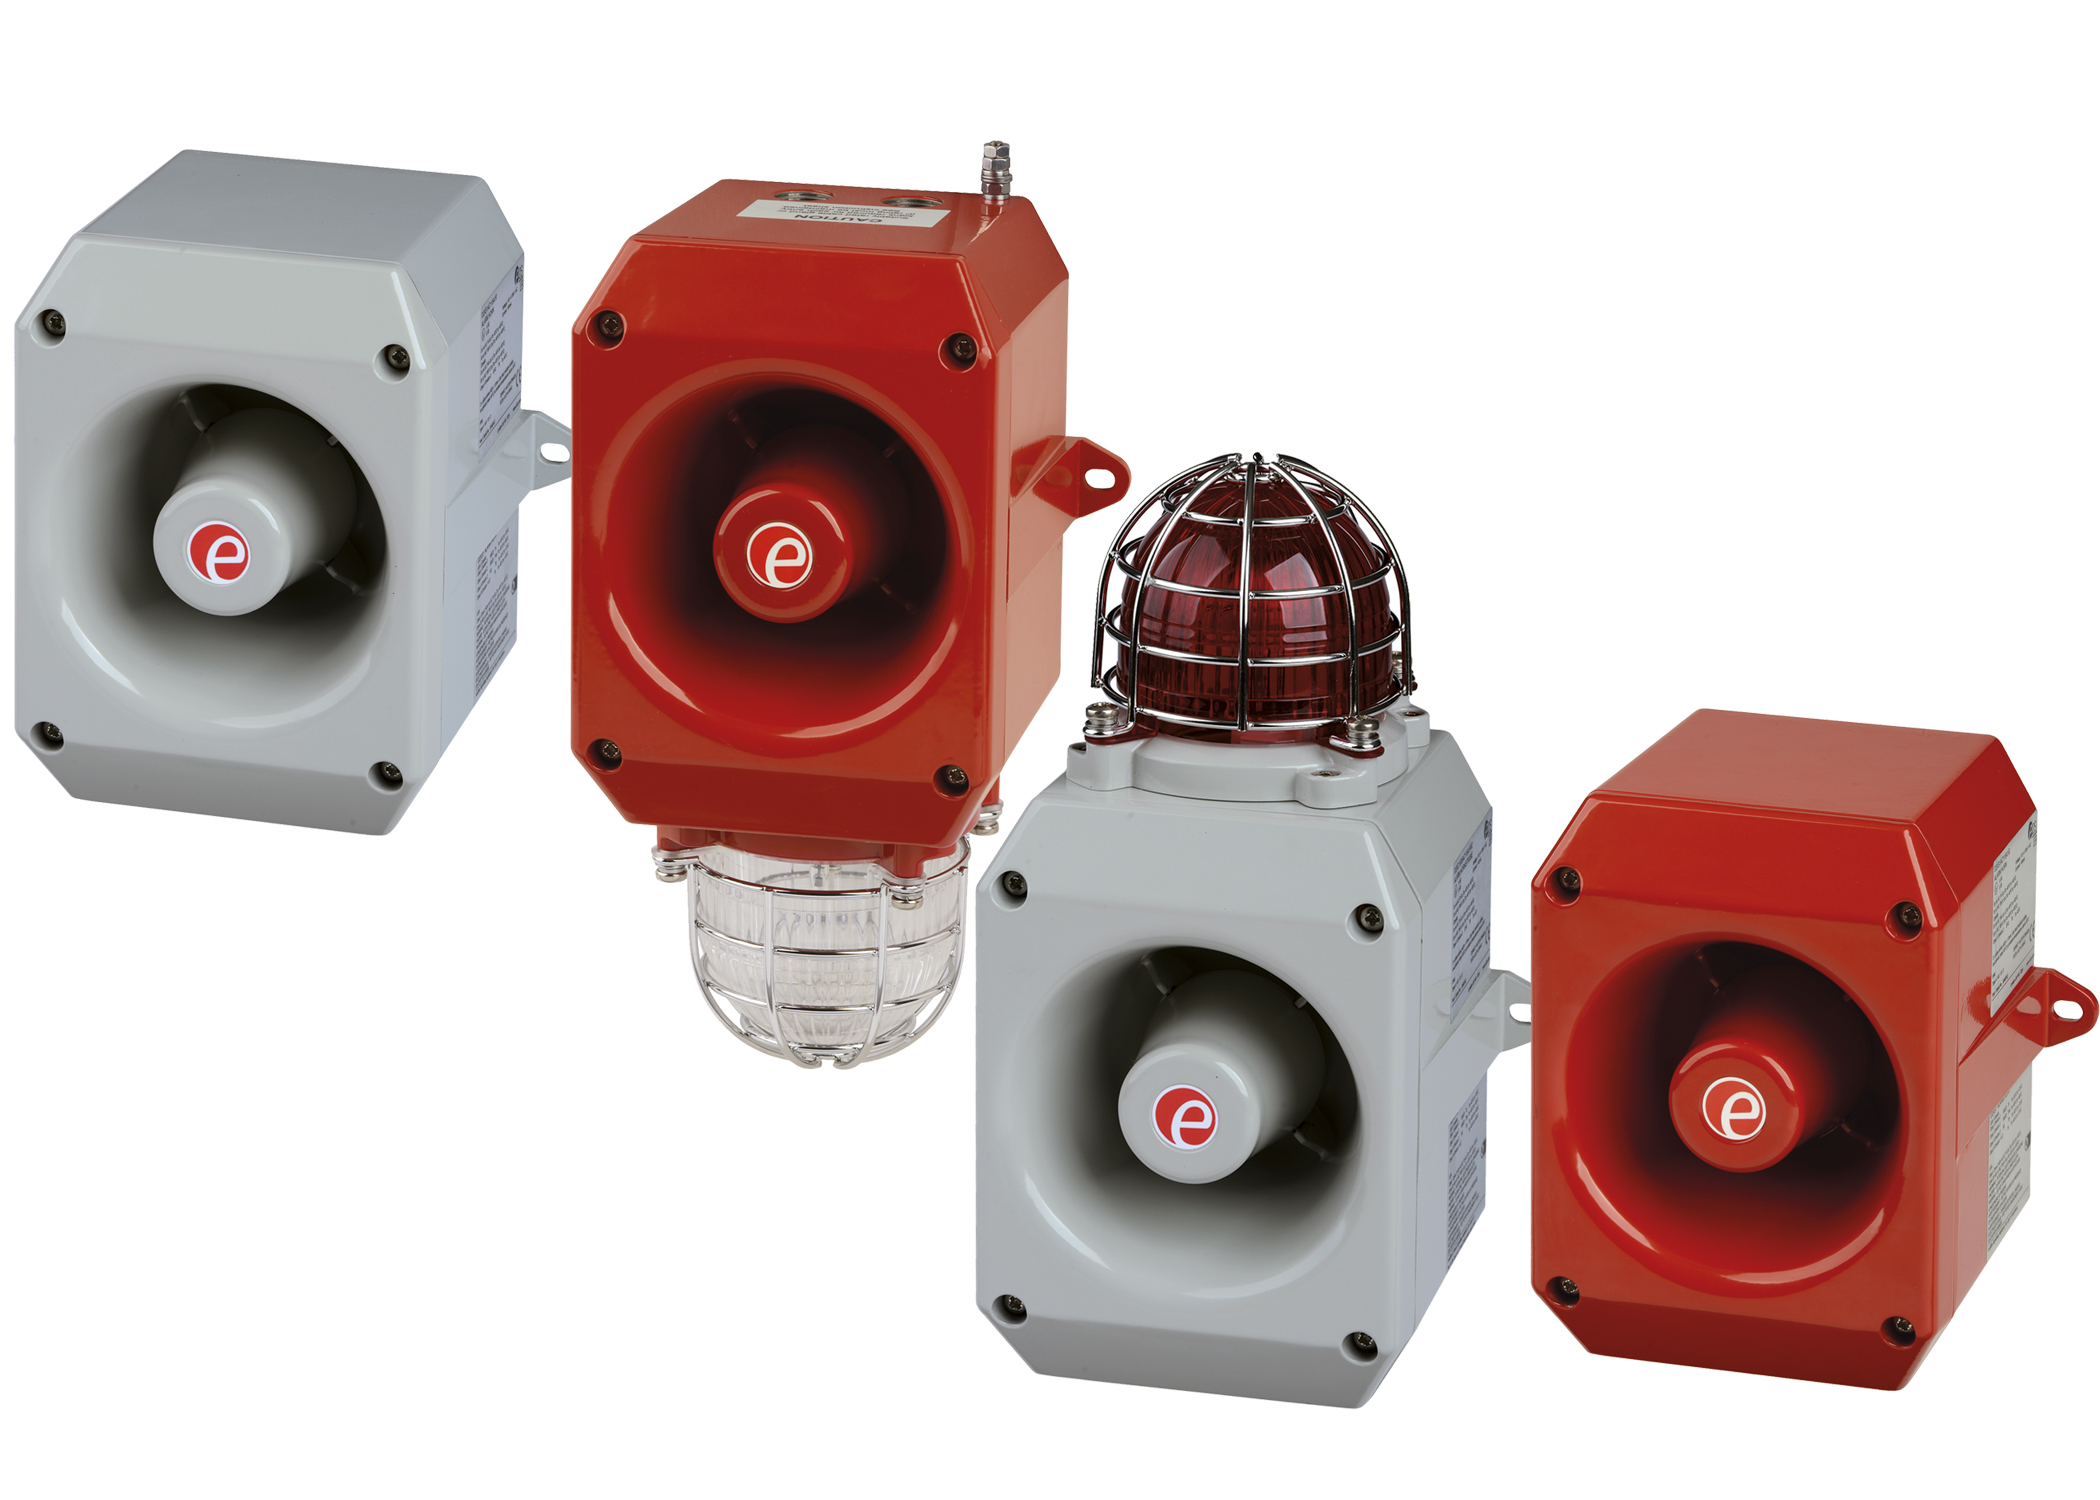 New compact high output D2x explosion proof horn sounders and horn/beacon units from E2S